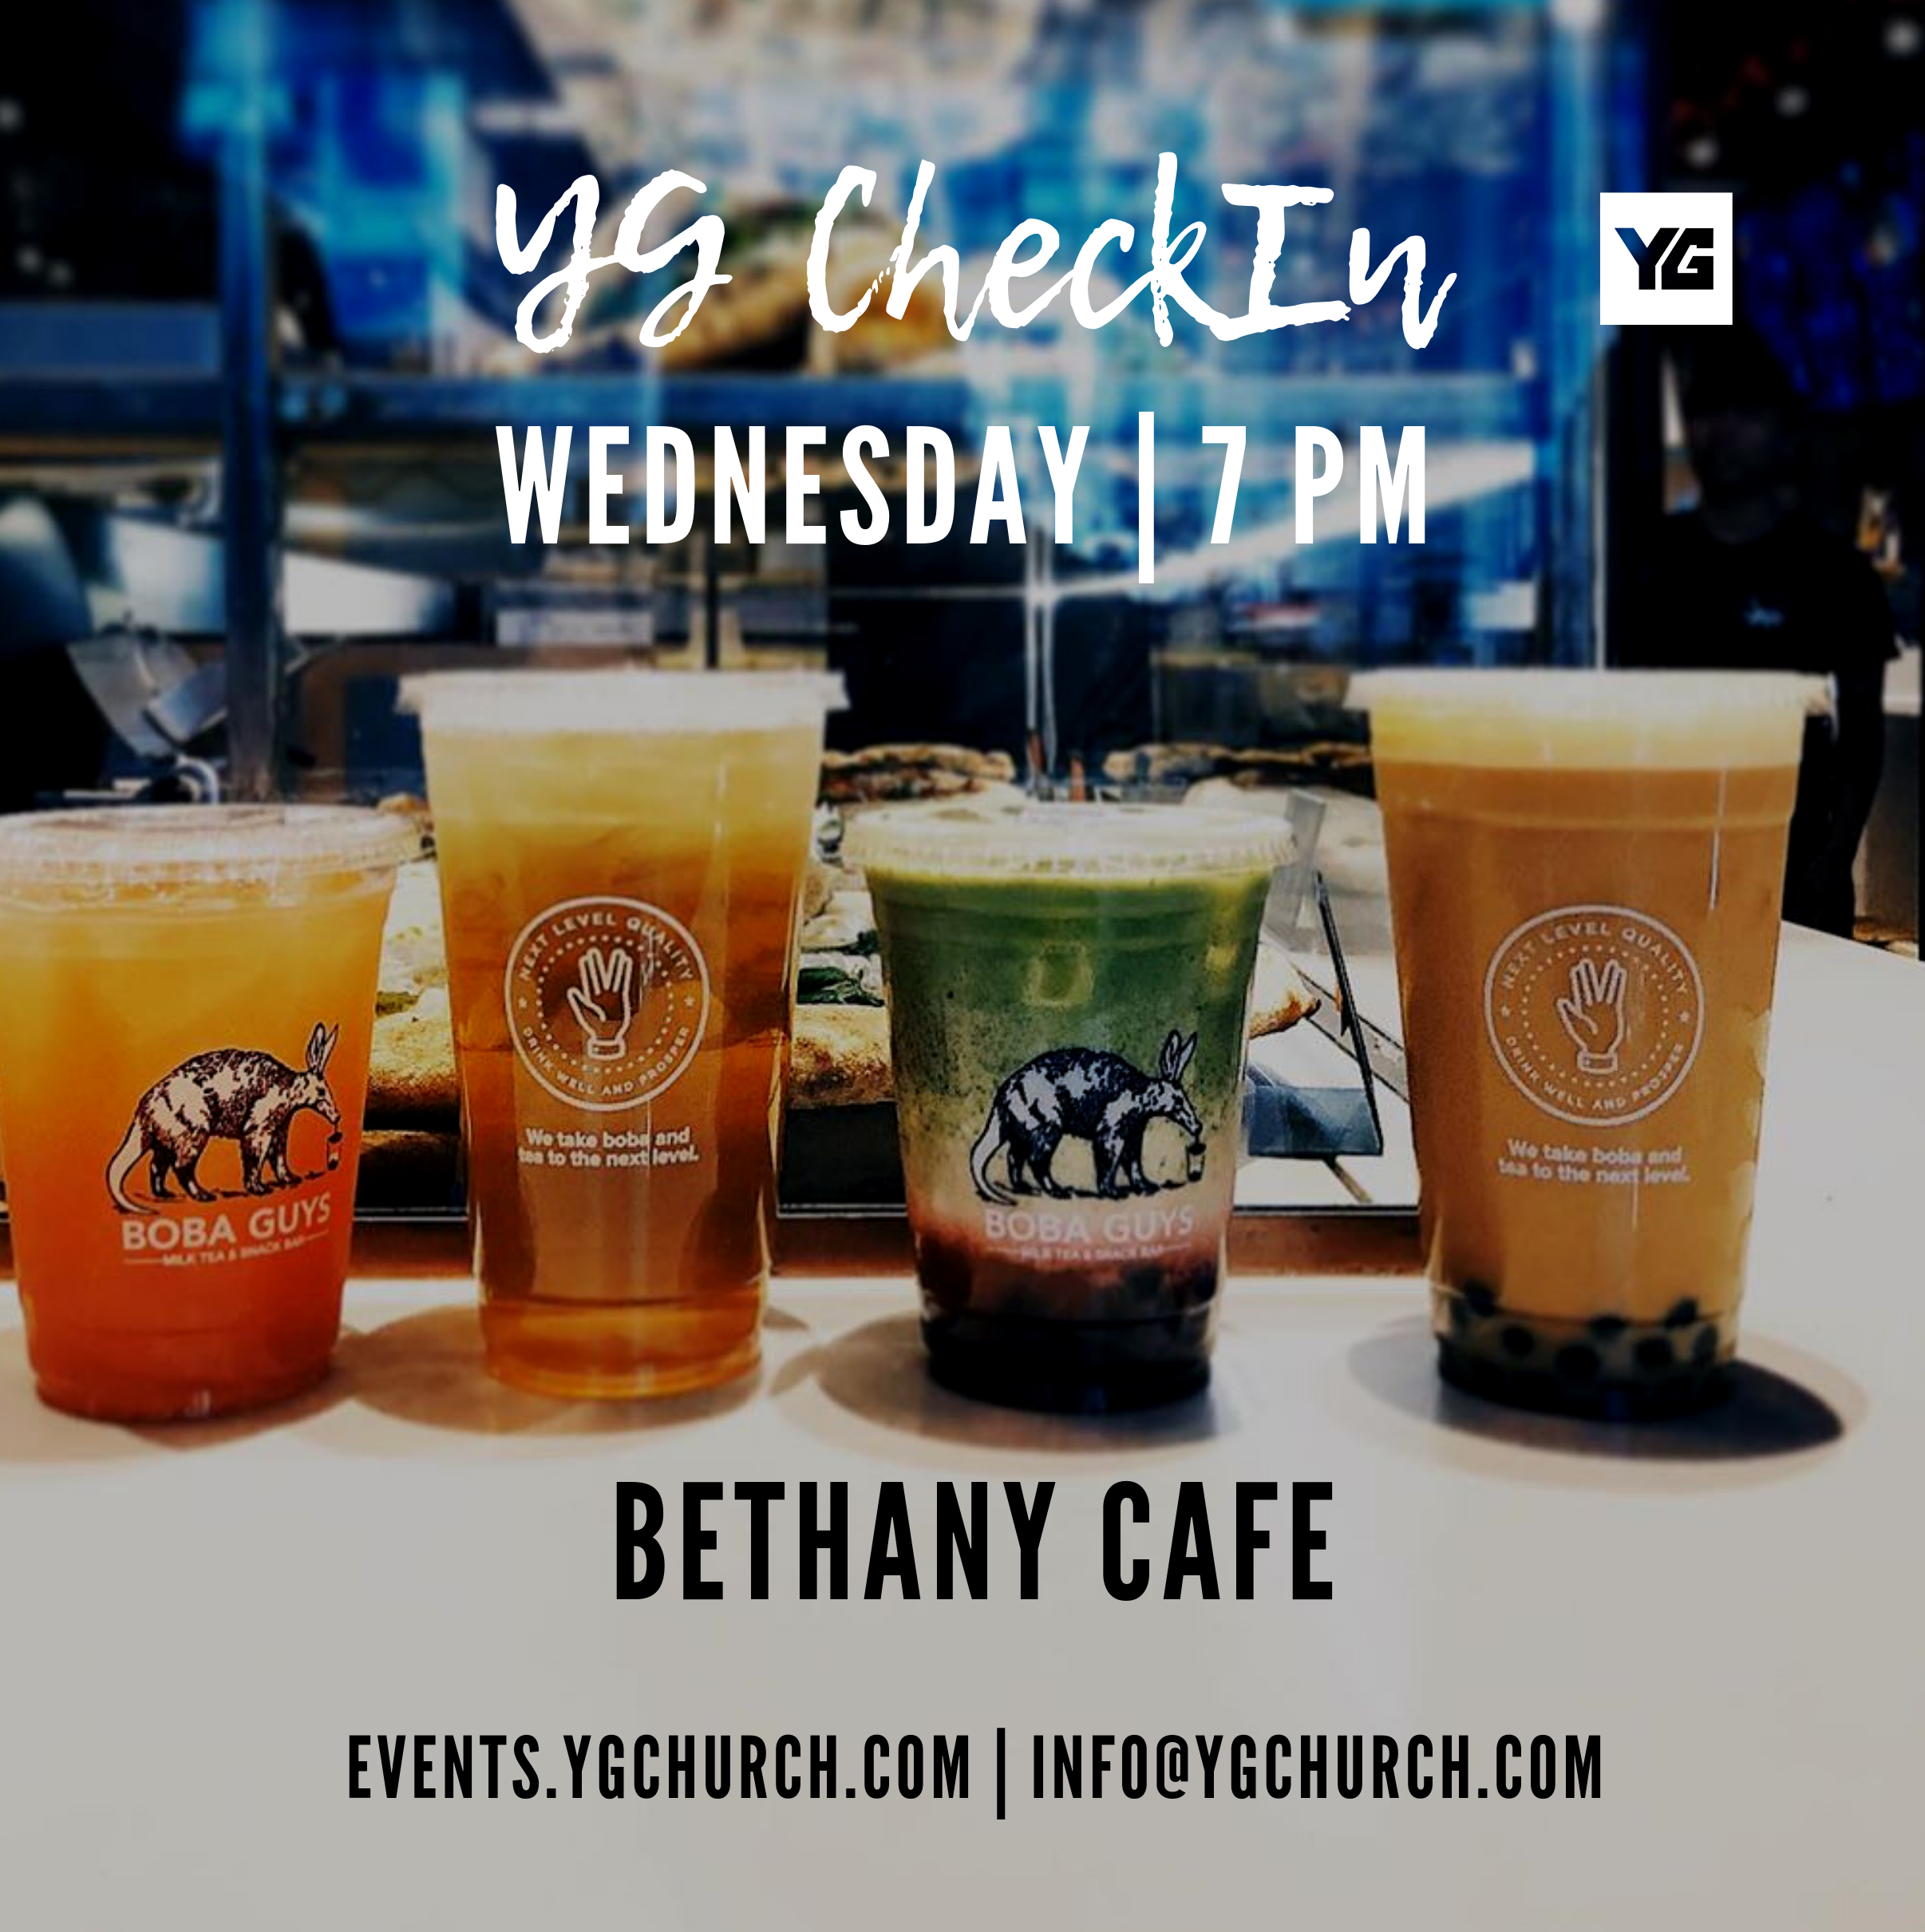 """YG CHECKIN SEP 4TH • 7PM • BETHANY CAFE   Join YG CheckIn for food, coffee and conversations. YG CheckIn is switching its meeting location to Bethany Cafe in Arlington, Texas. This new location will provide a great opportunity to meet new people while taking a break from your busy week. This group provides a """"come and go"""" atmosphere meaning that you are welcome to stop by anytime between 7:00 PM and 9:00 PM.   YG CheckIn: YG CheckIn is a LIFEgroup sponsored by Younger Generation Church in Arlington, Texas. The group provides a great point of contact for DFW community members interested in connecting or learning more about Younger Generation Church.   Specific meeting dates are available at  events.ygchurch.com.  Email info@ygchurch.com for more information.  Bethany Cafe 705 W Park Row Dr Arlington, Texas 76013 817-461-1245  YG CheckIn Contact: For LIFEgroup specific questions, feel free to contact the YG CheckIn coordinator, Dominique Garcia, by emailing dominique_11@live.com or calling 817-964-0778. General inquiries may be directed to Tim Kosaka, Younger Generation Church's Director of Public Relations, at tim@YGChurch.com."""